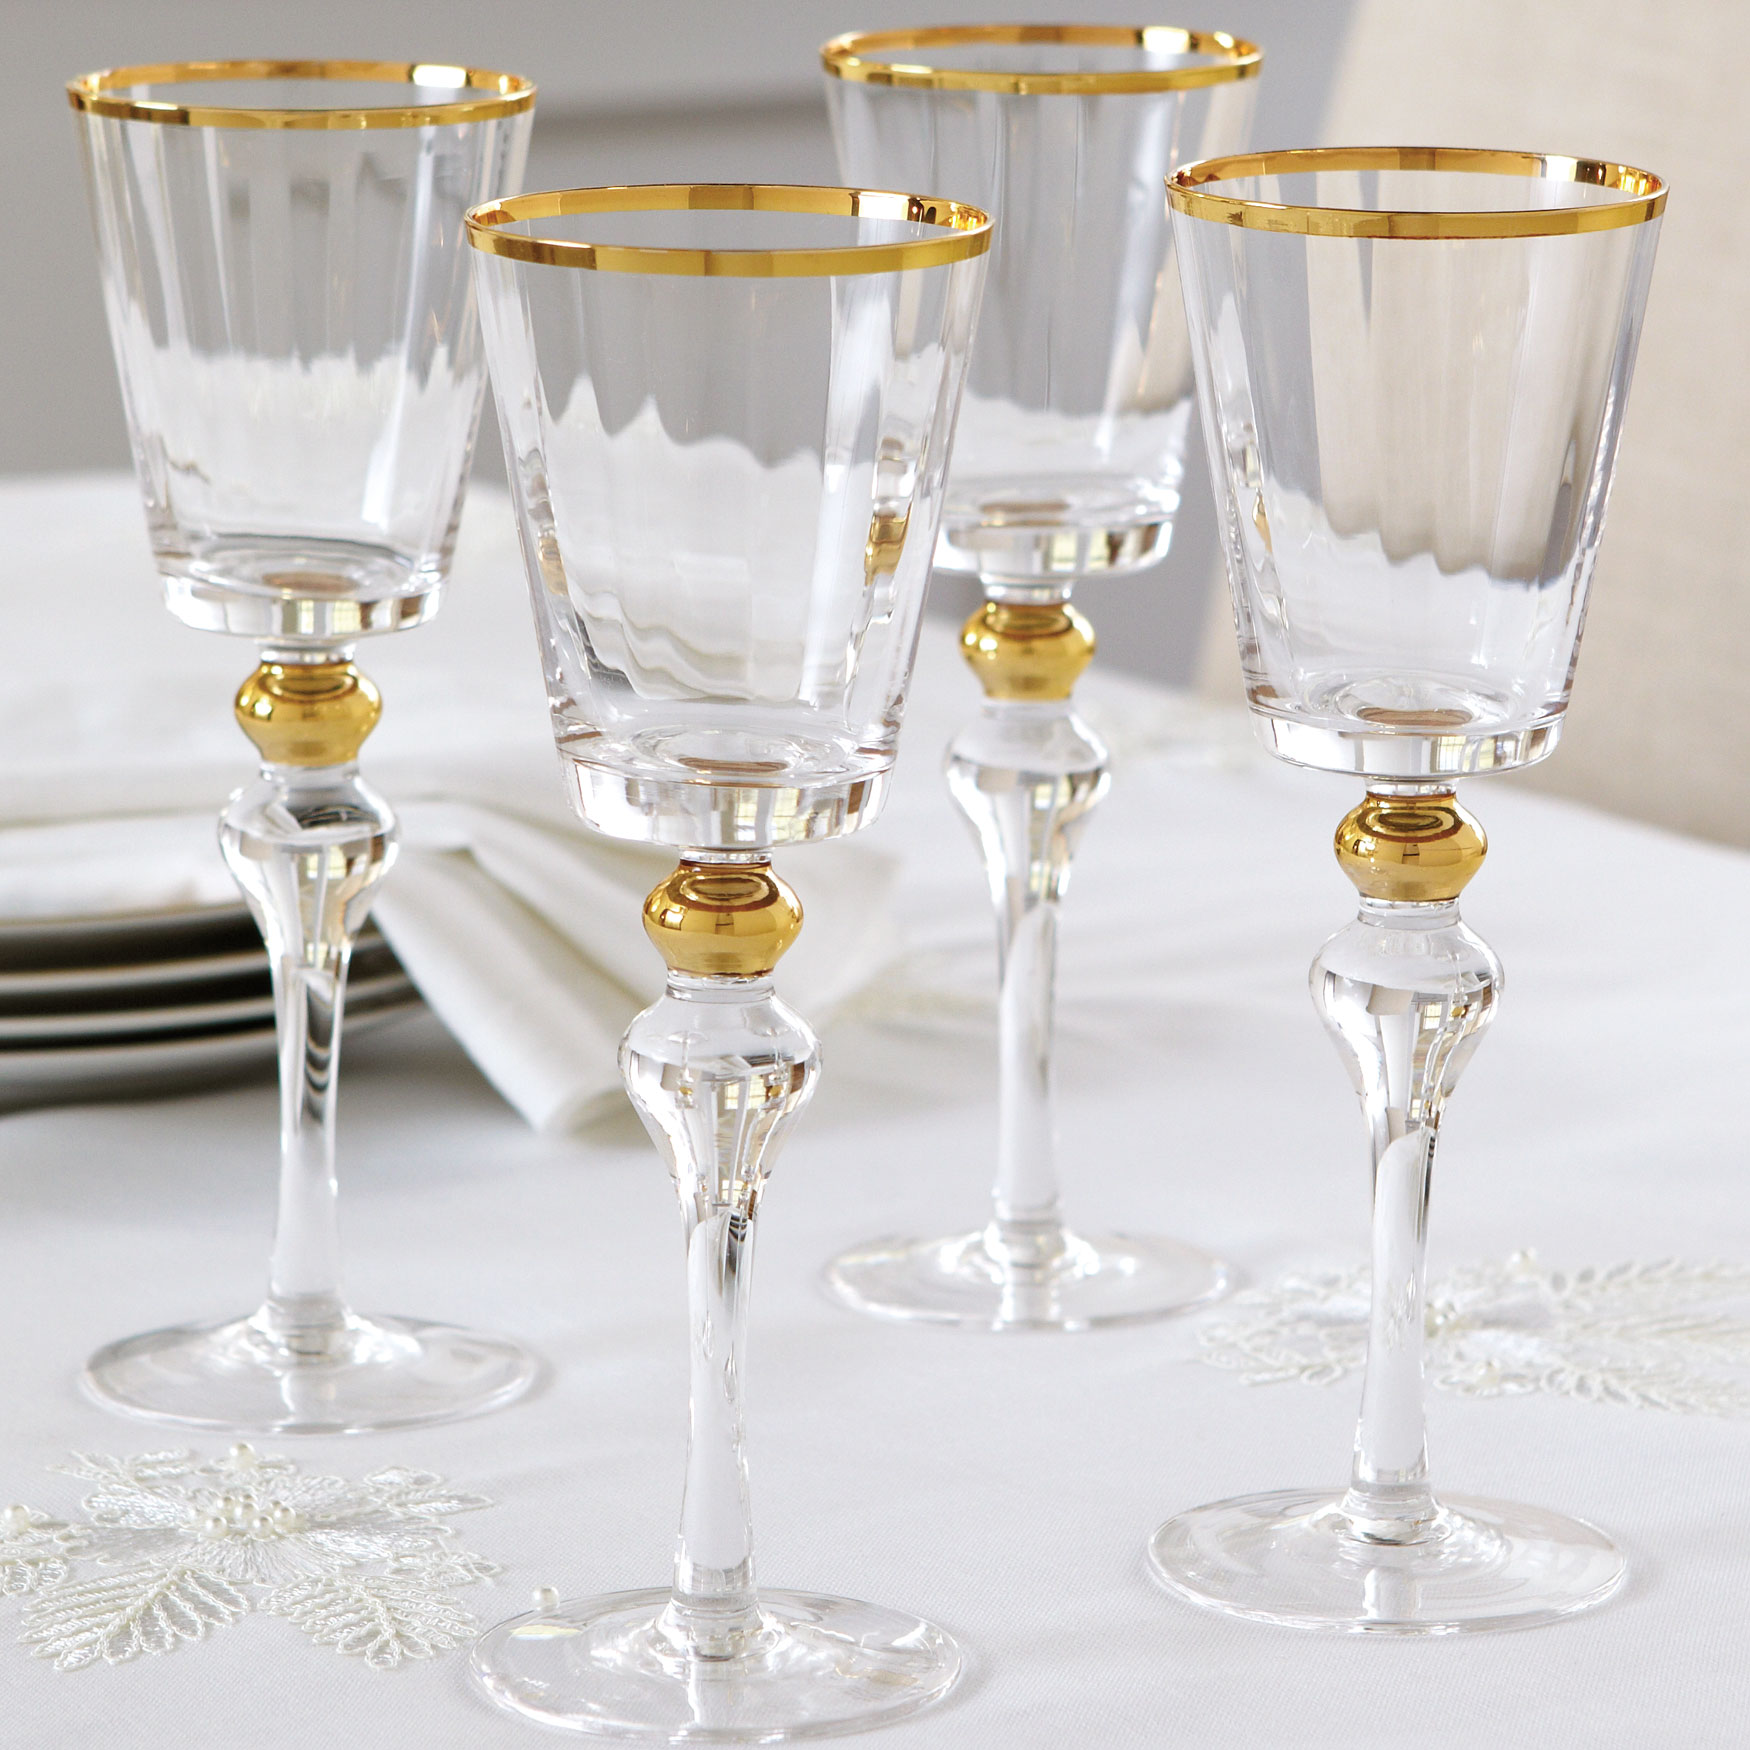 Gold Rim Wine Glasses, Set of 4, GOLD